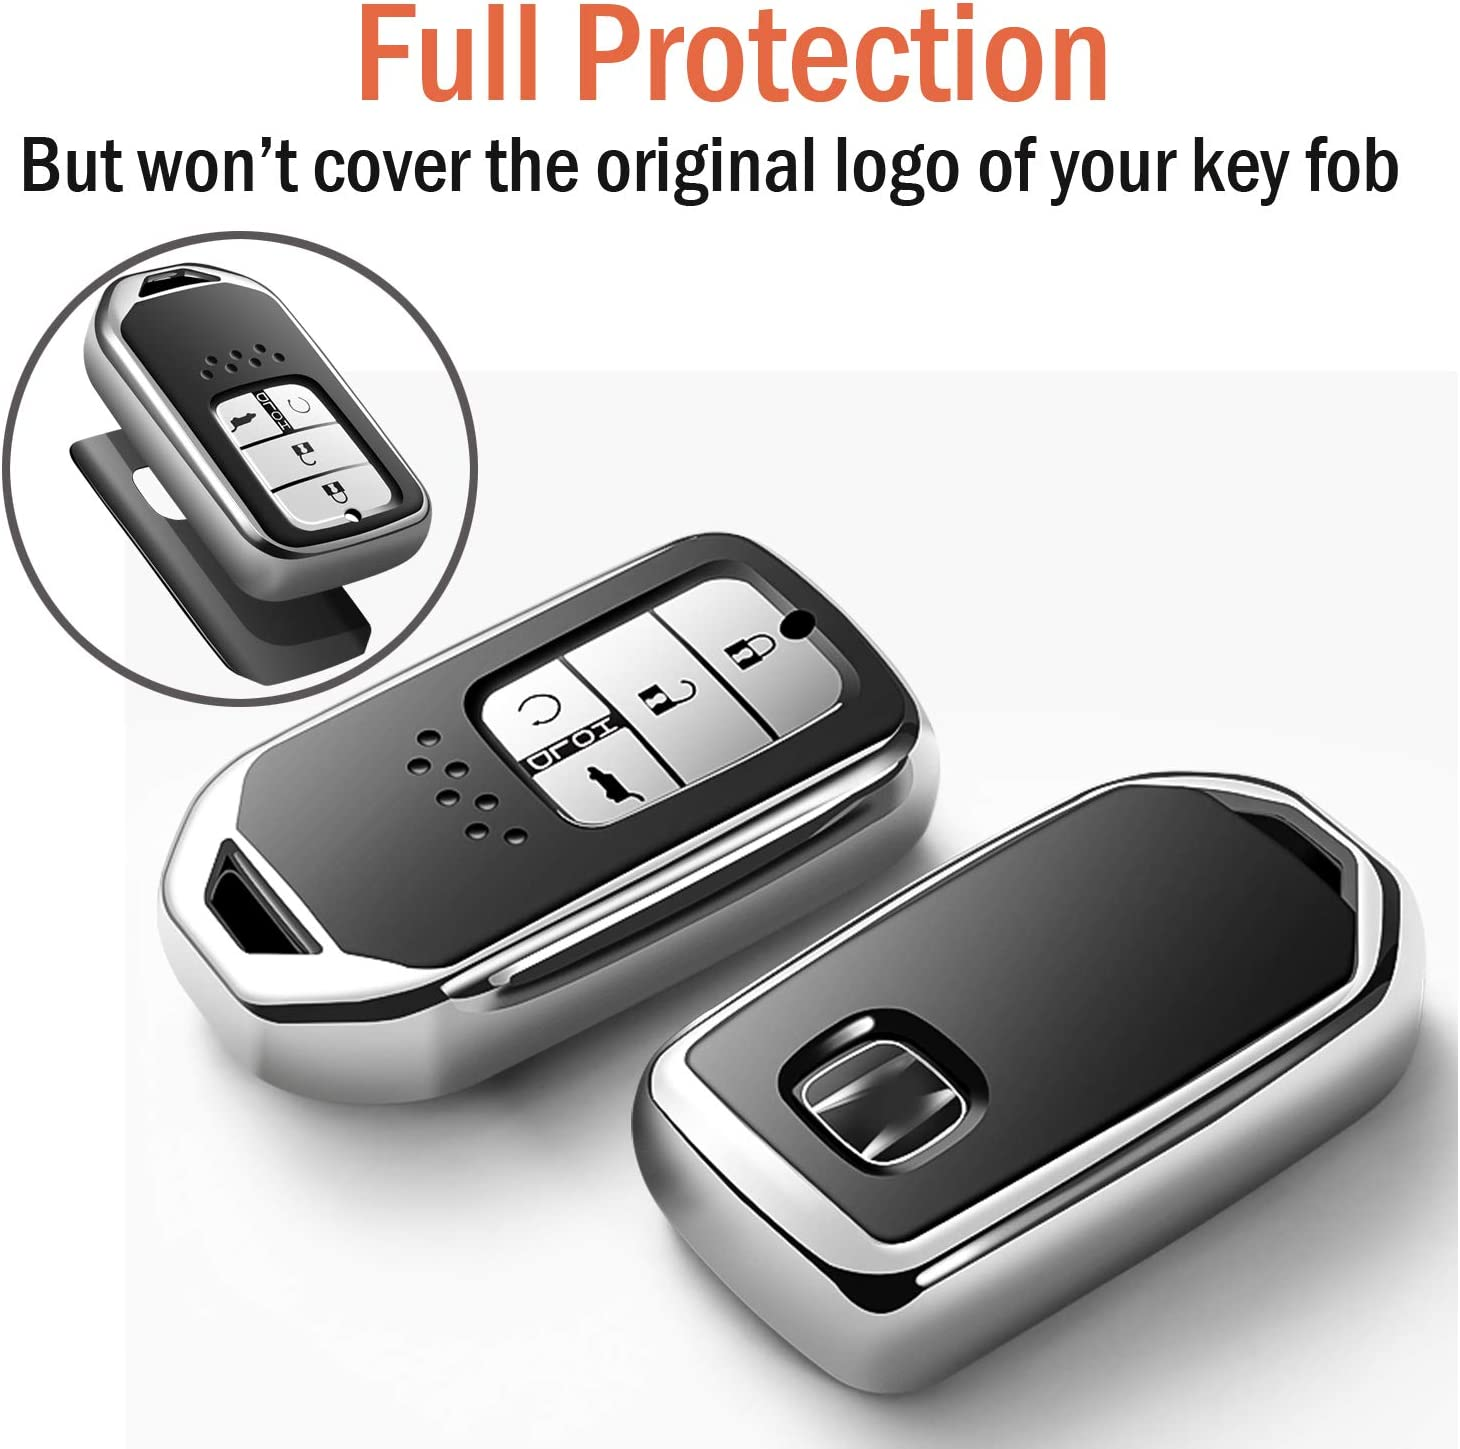 Uxinuo Compatible with Honda Key Fob Cover Case for Honda Accord Civic CR-V CRV Pilot EX-L Touring Smart Premium Soft TPU Full Cover Protection Smart Remote Keyless Key Fob Shell